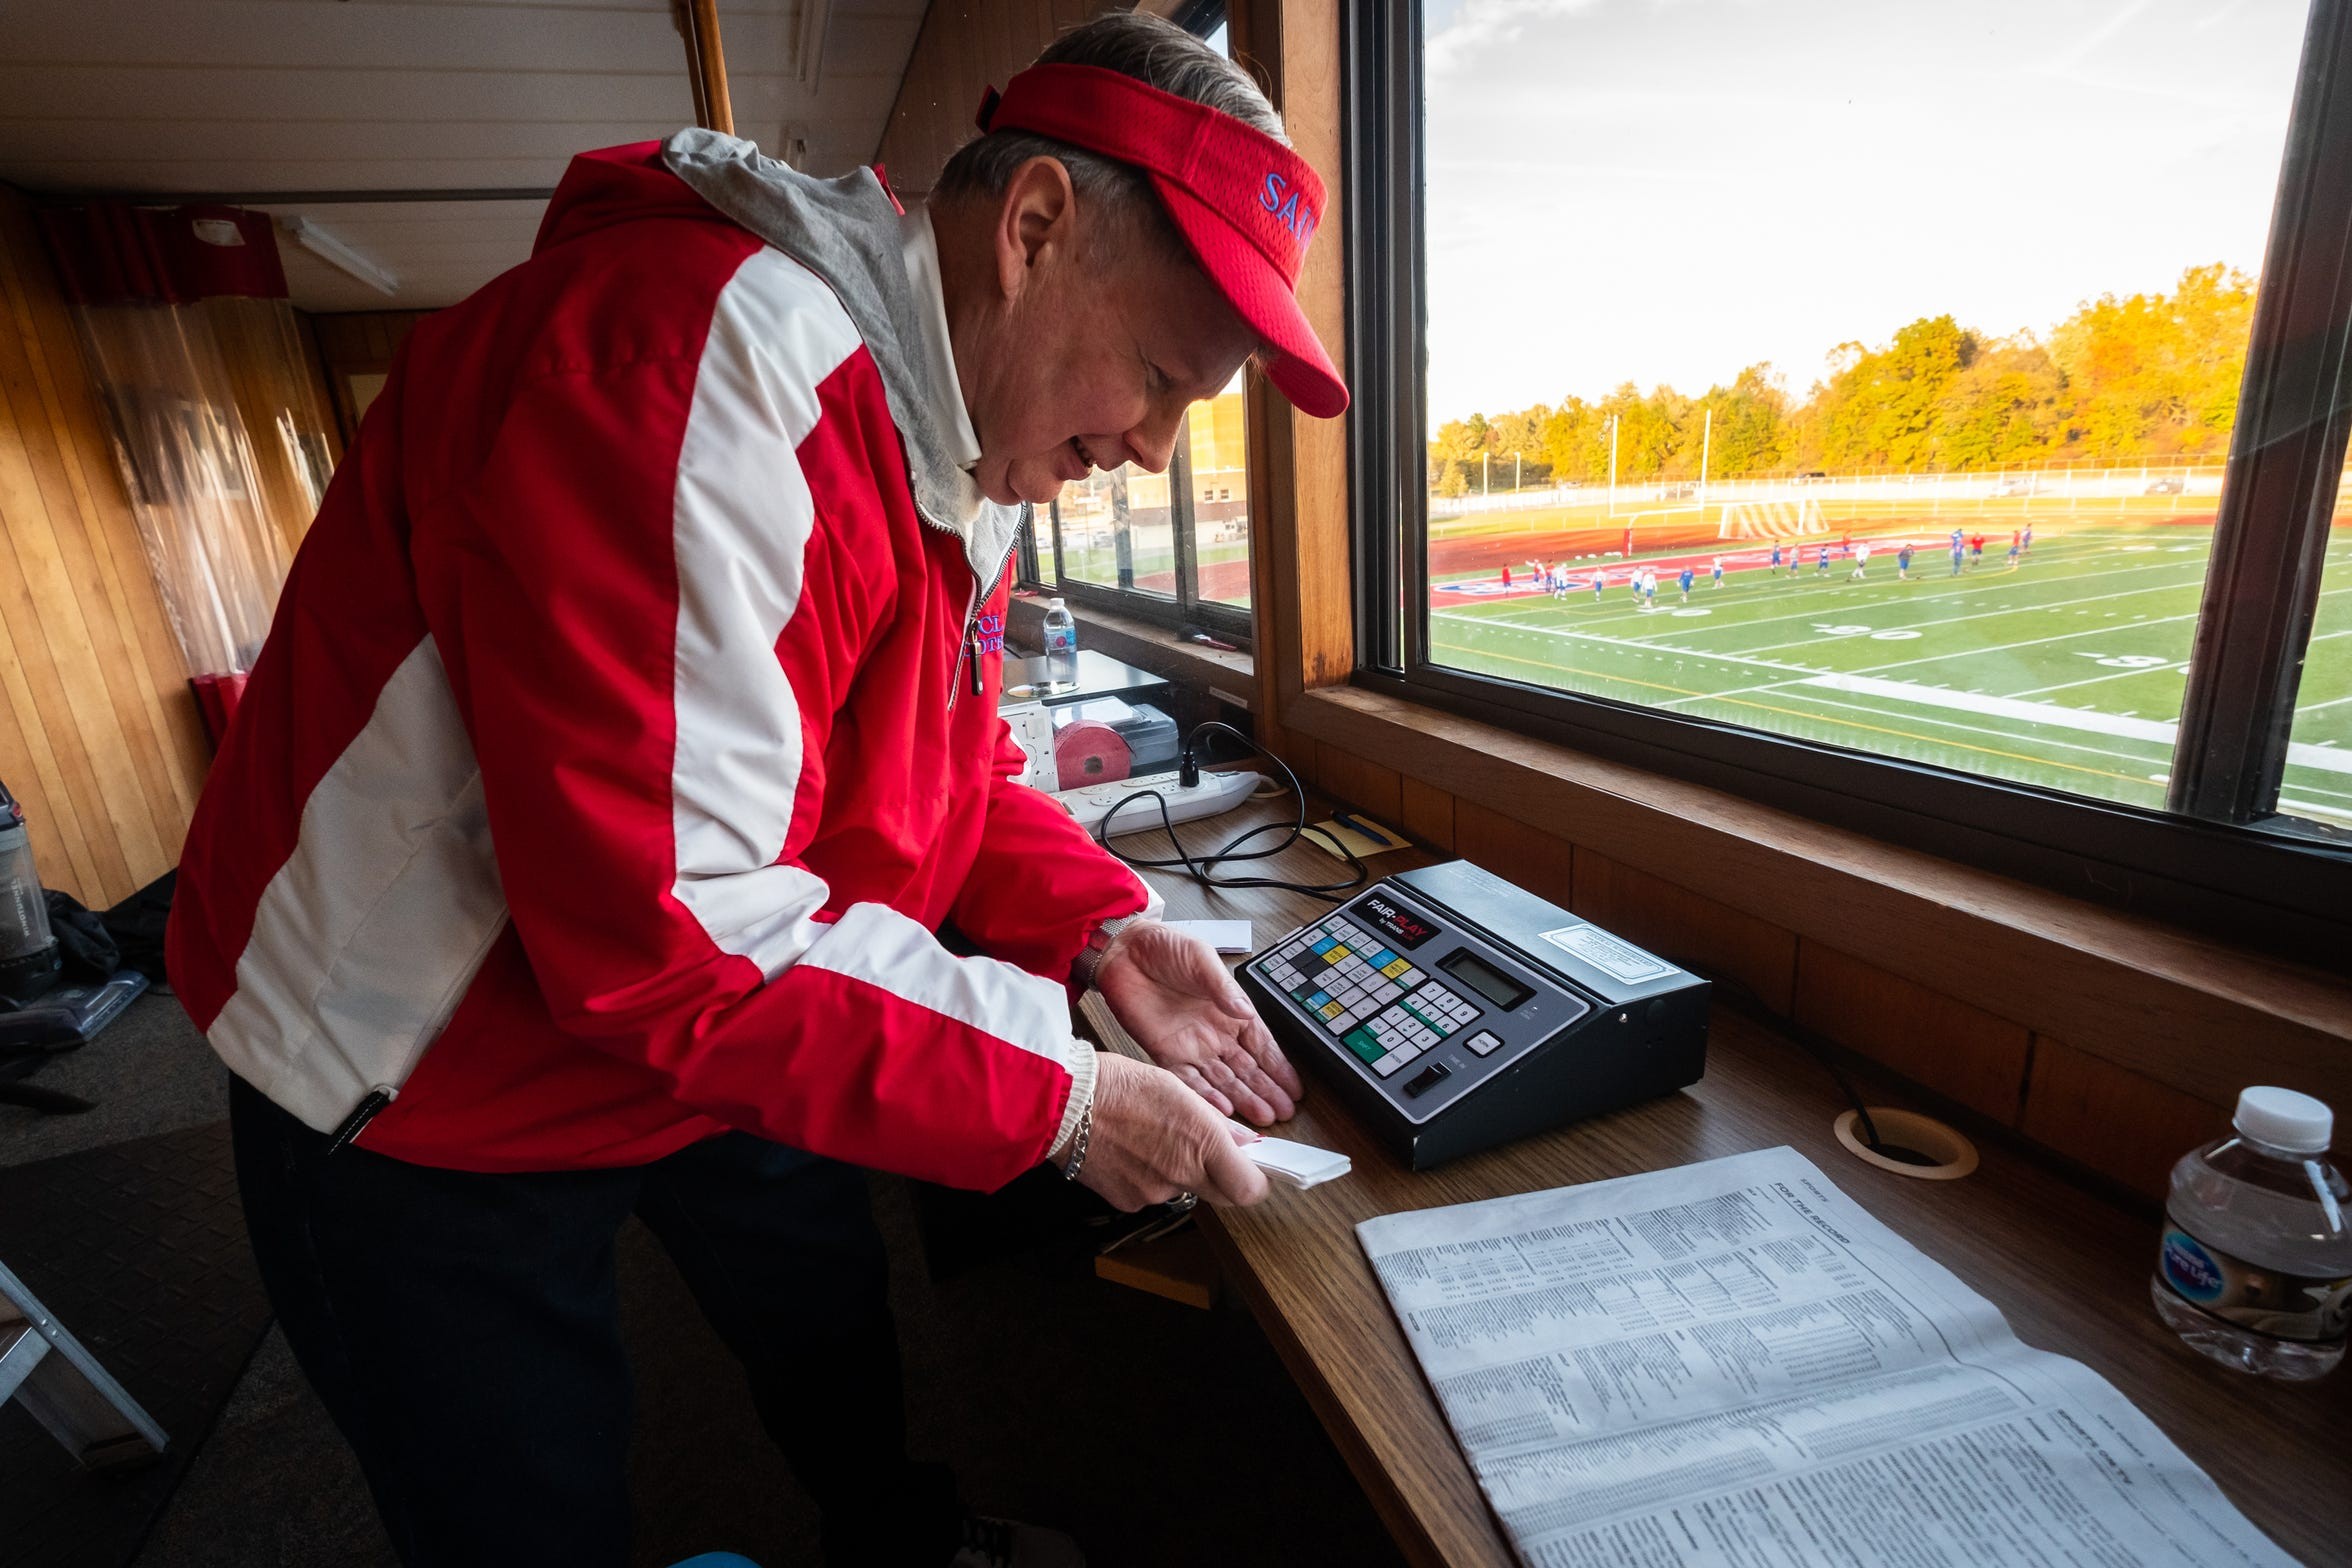 Bill Durow, 70, works to set up his space in the press box at East China Stadium before St. Clair takes on South Lake Friday, Oct. 18, 2019. Durow runs the scoreboard for St. Clair, Marine City and Cardinal Mooney football, St. Clair boys' and girls' basketball, SC4 men's and women's basketball and St. Clair and Marine City soccer.